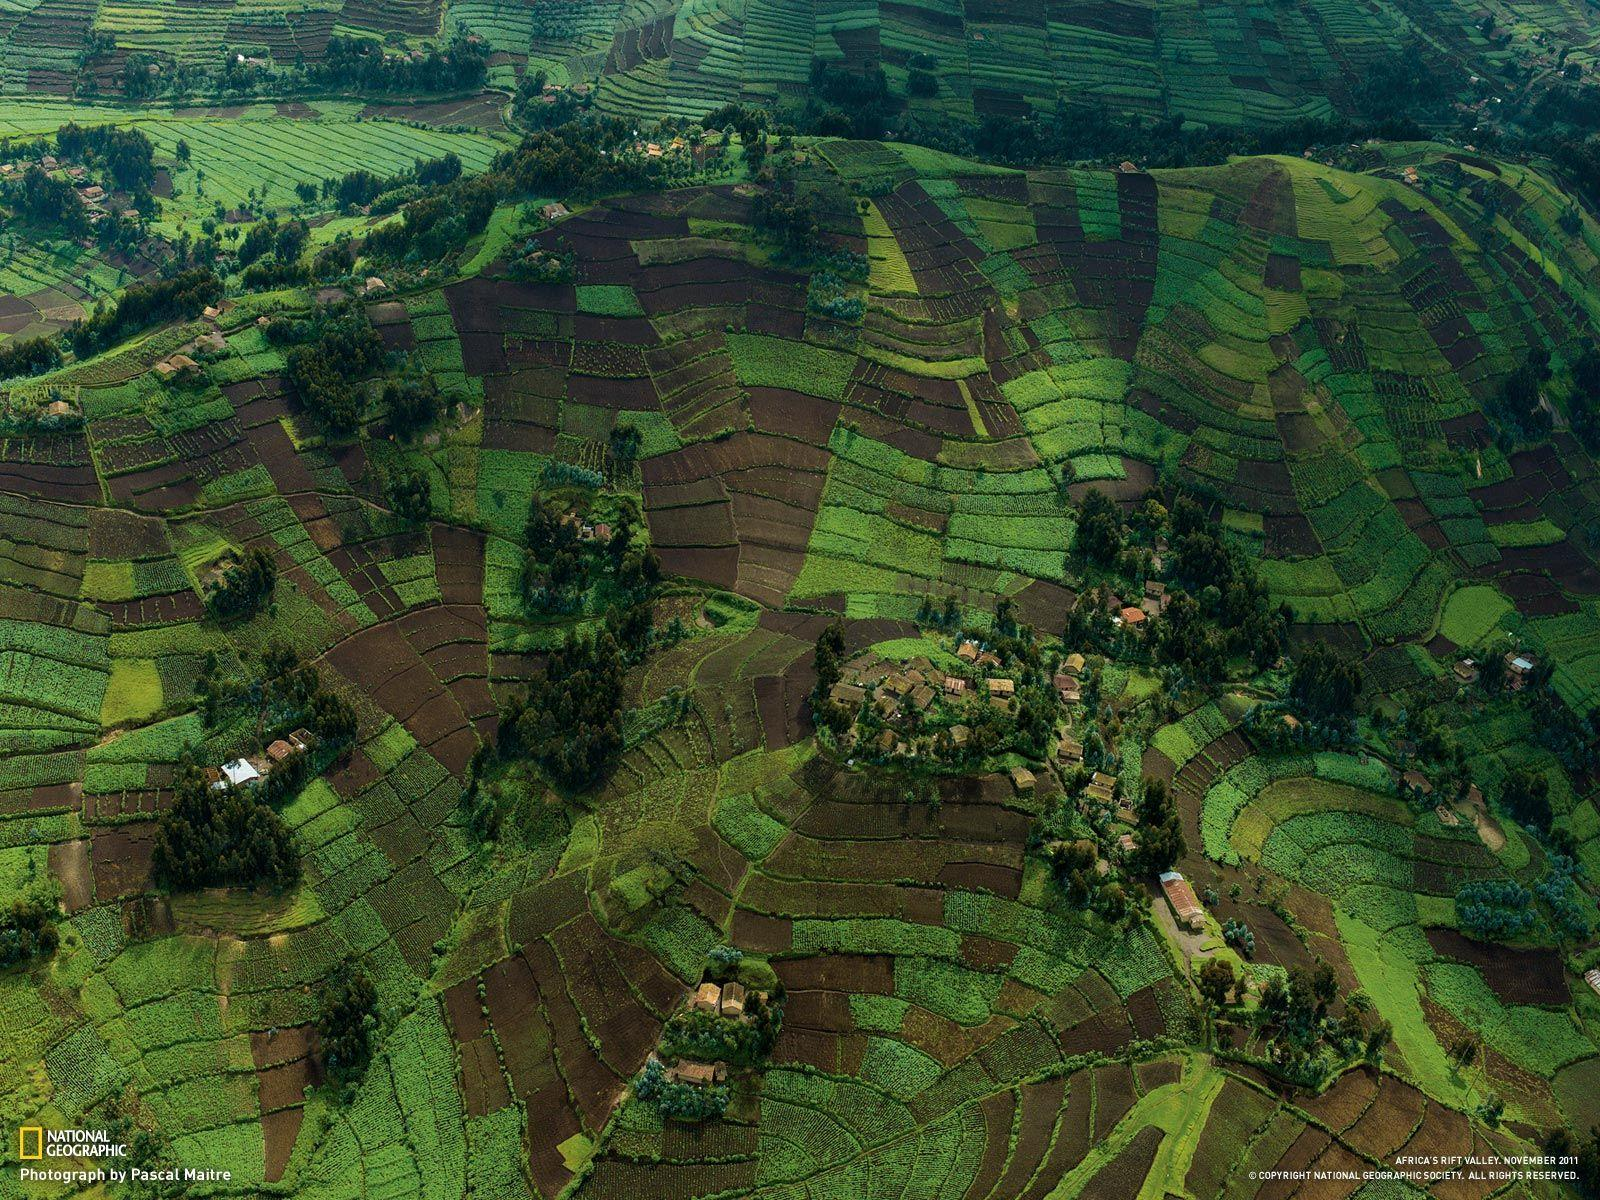 Africa's Albertine Rift - Photo Gallery - Pictures, More From ...